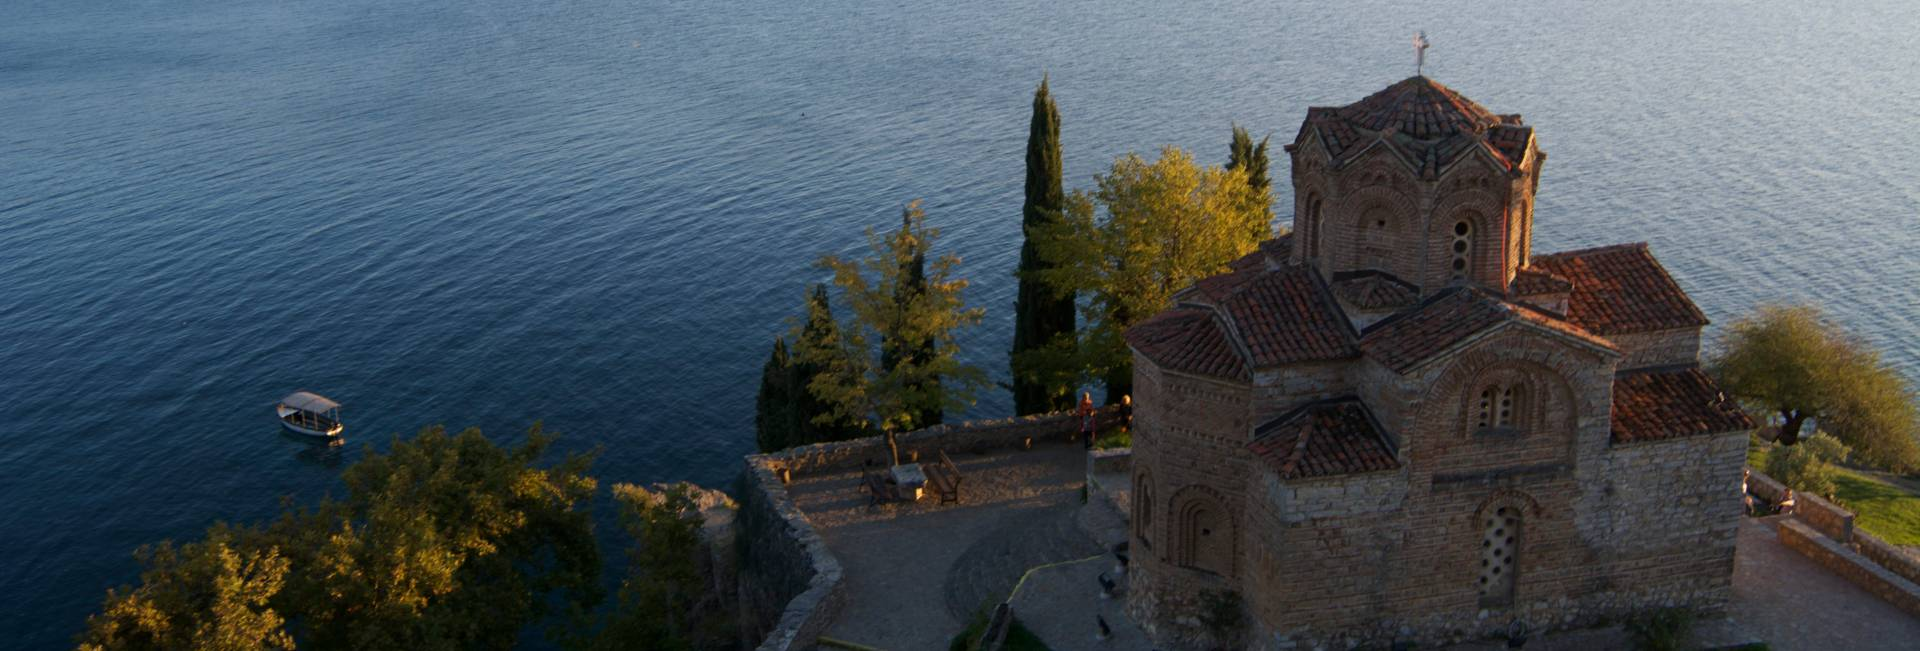 Lake Ohrid in North Macedonia. Photo credit: Peter Guttman